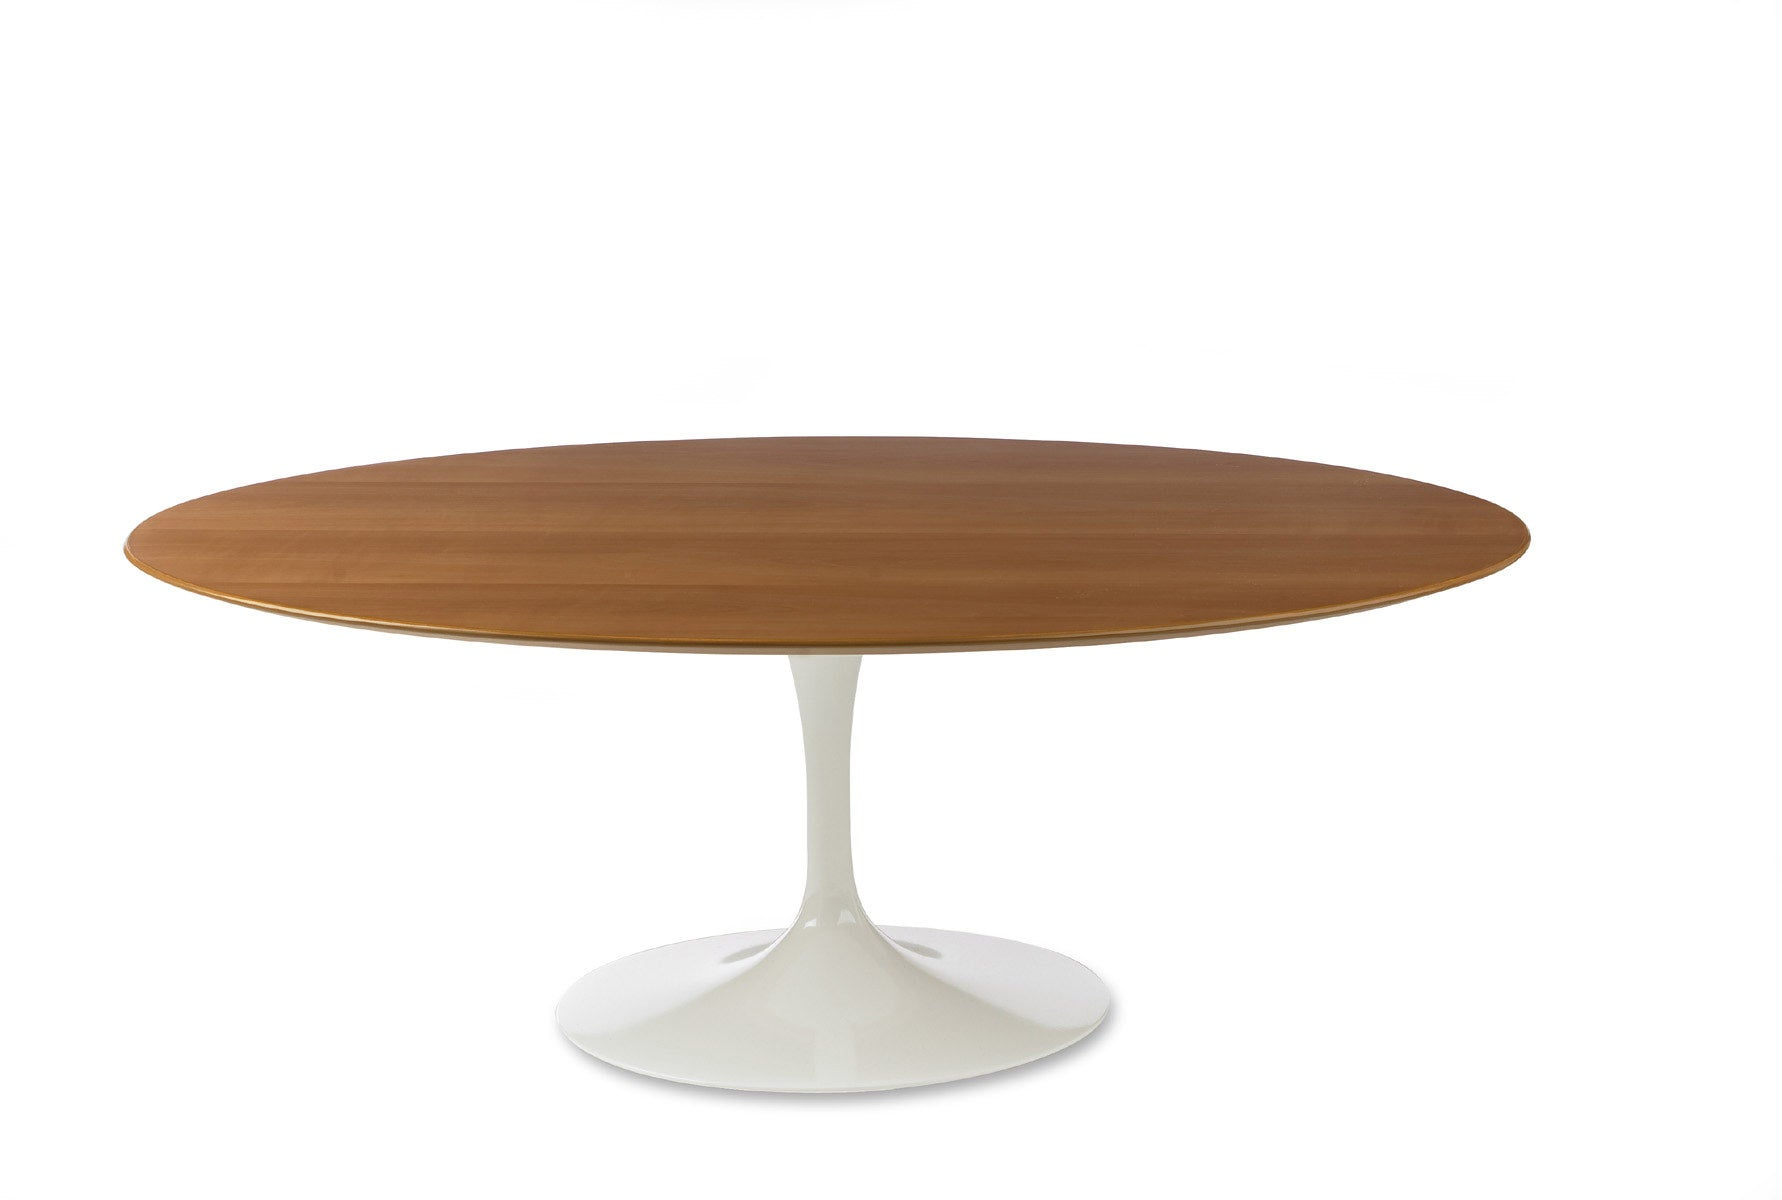 Merveilleux Saarinen Tulip Table, Veneer Top